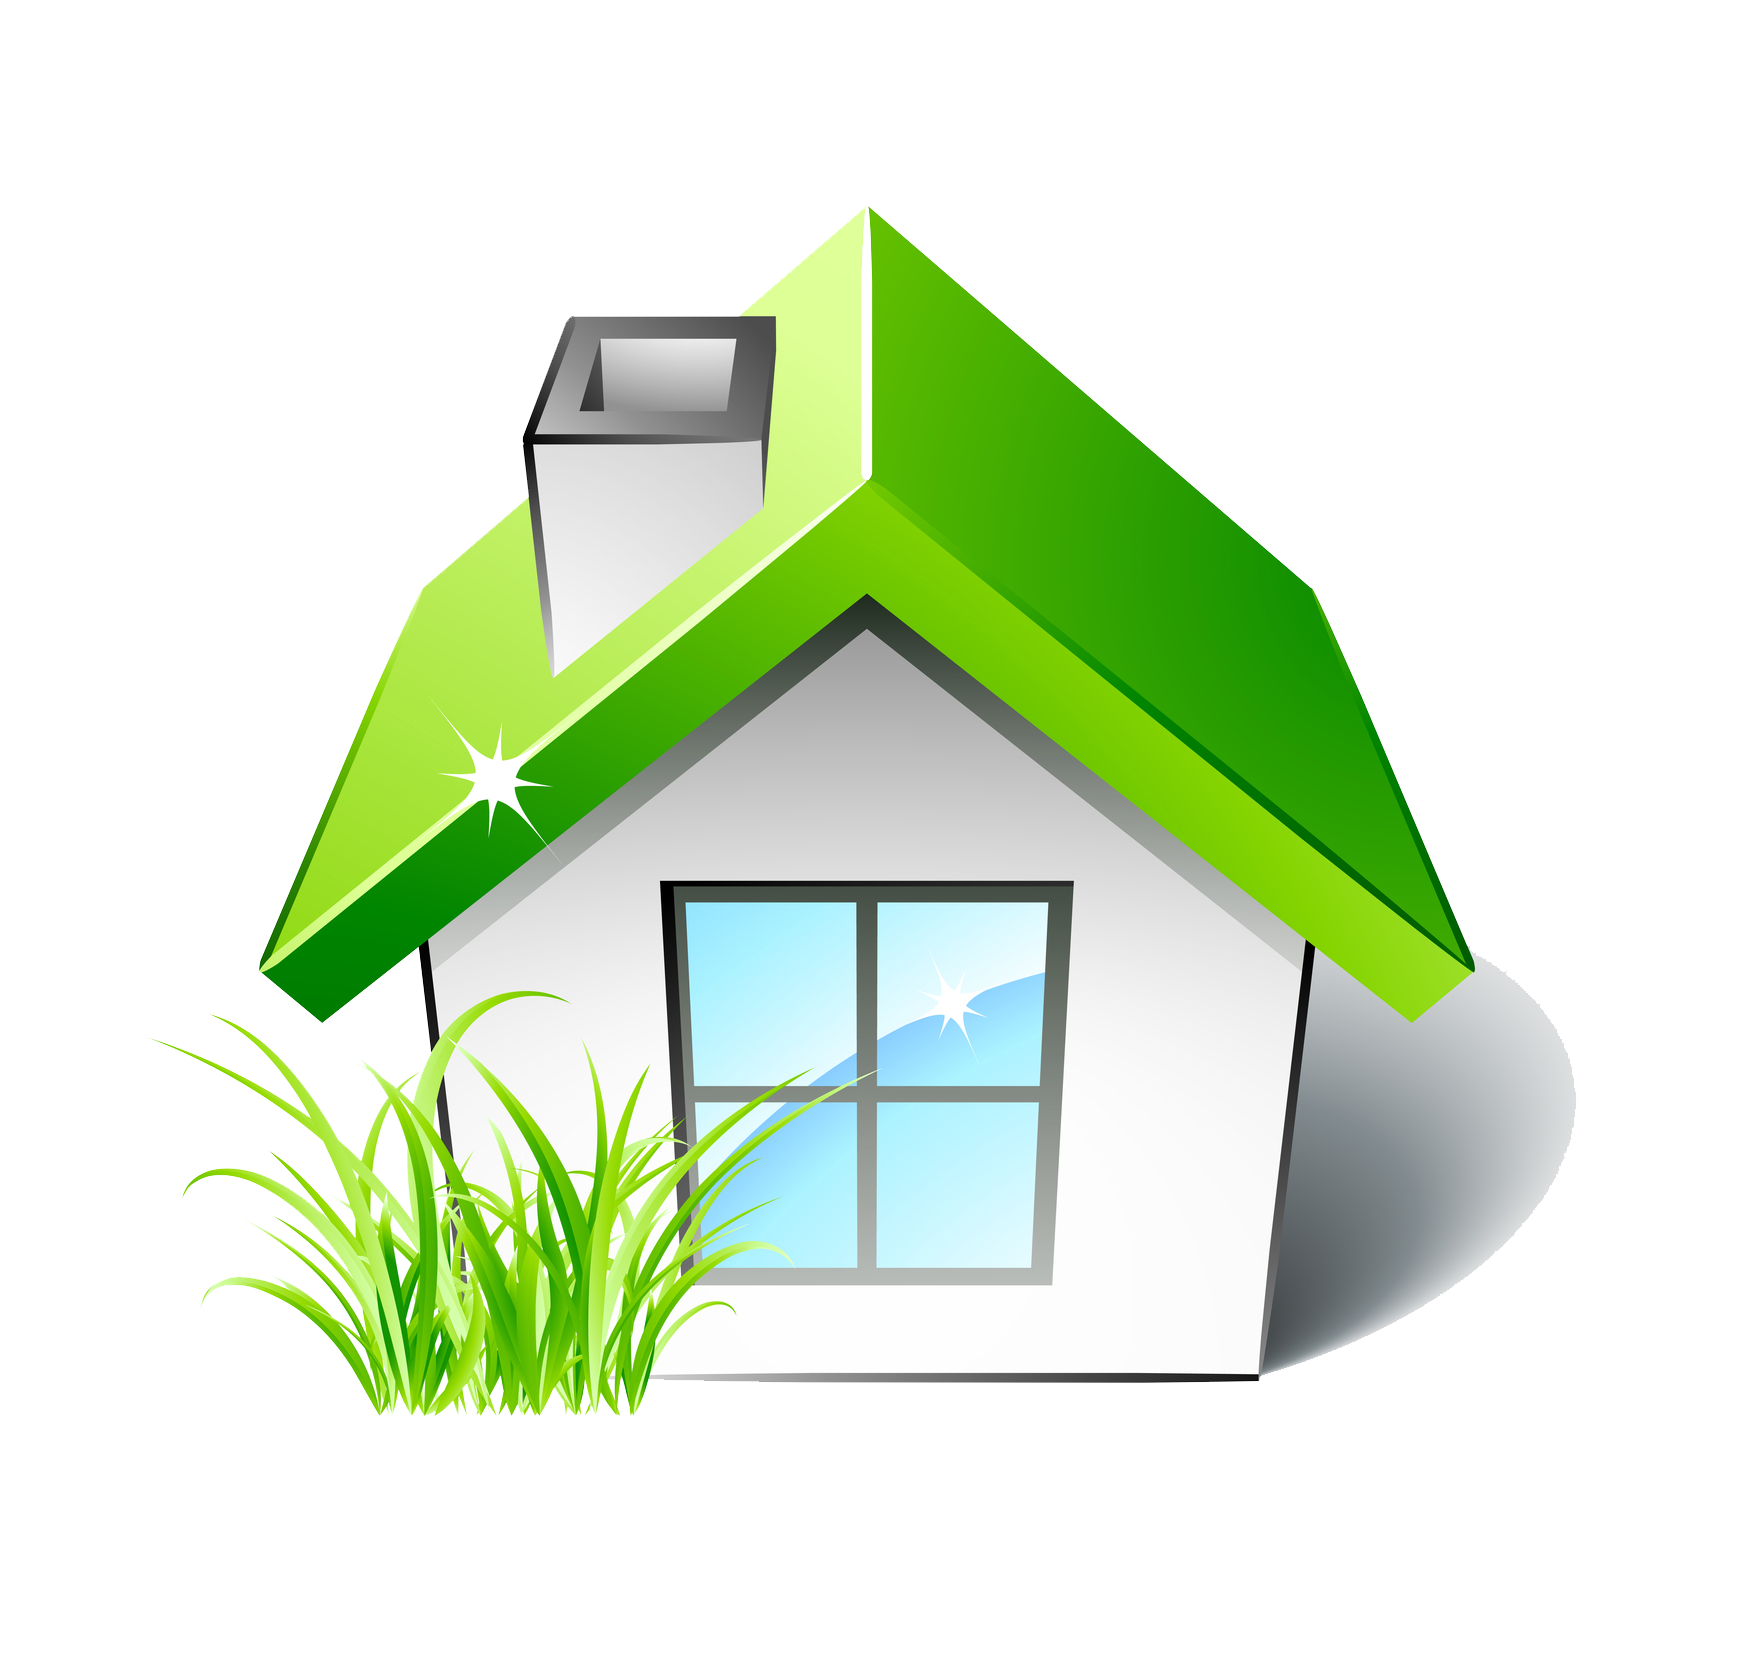 House wall clipart picture royalty free download Home HD PNG Transparent Home HD.PNG Images.   PlusPNG picture royalty free download